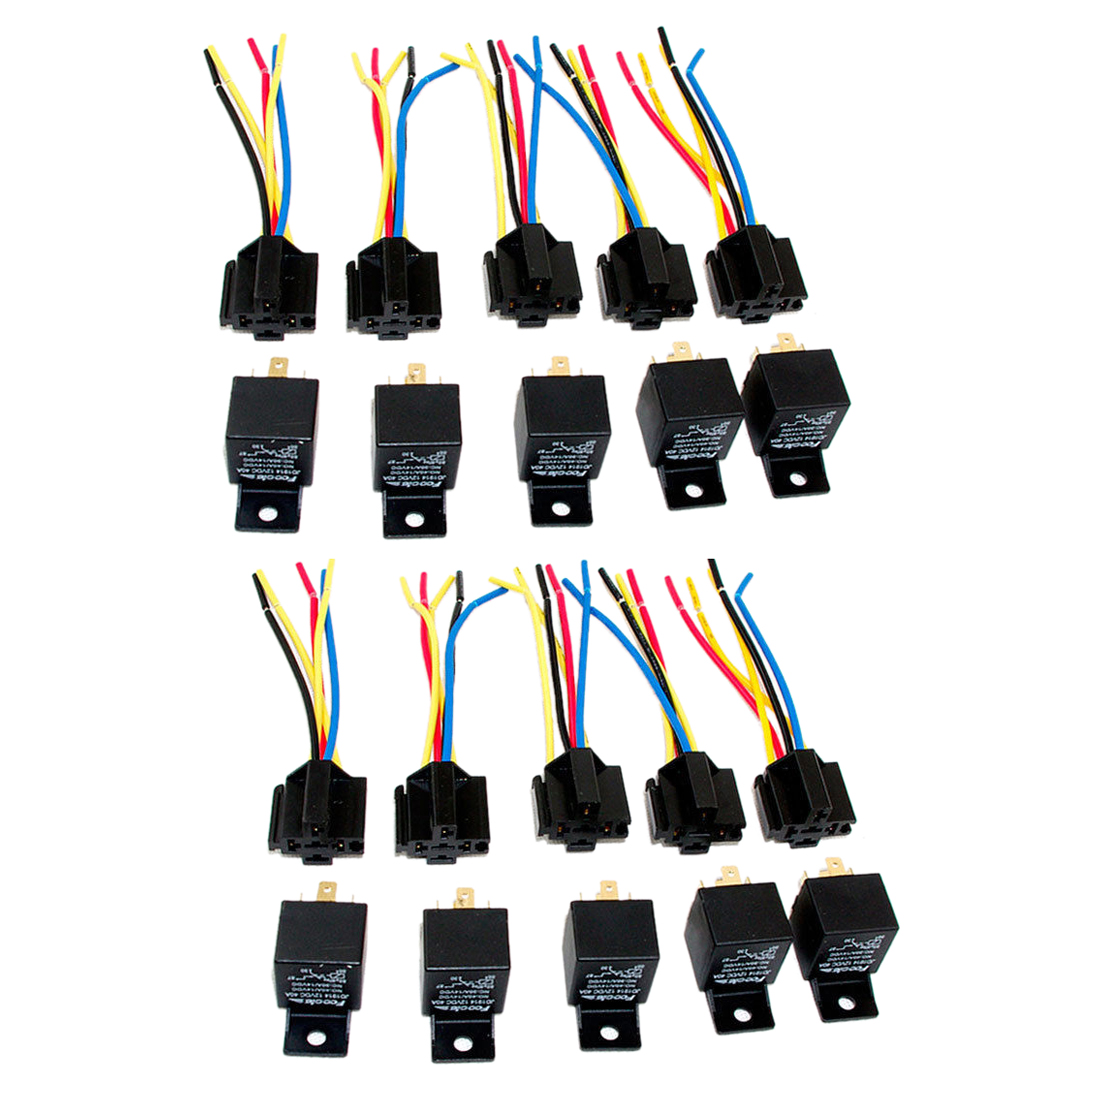 Lot10 New 12 Volt 40 Amp SPDT Automotive Relay with Wires & Harness on 2 pole relay wiring, hella relay wiring, 40 amp fuse box, high power relay wiring, 240v relay wiring, plug in relay wiring, 4 pole relay wiring, 3 pole relay wiring, spdt relay wiring,